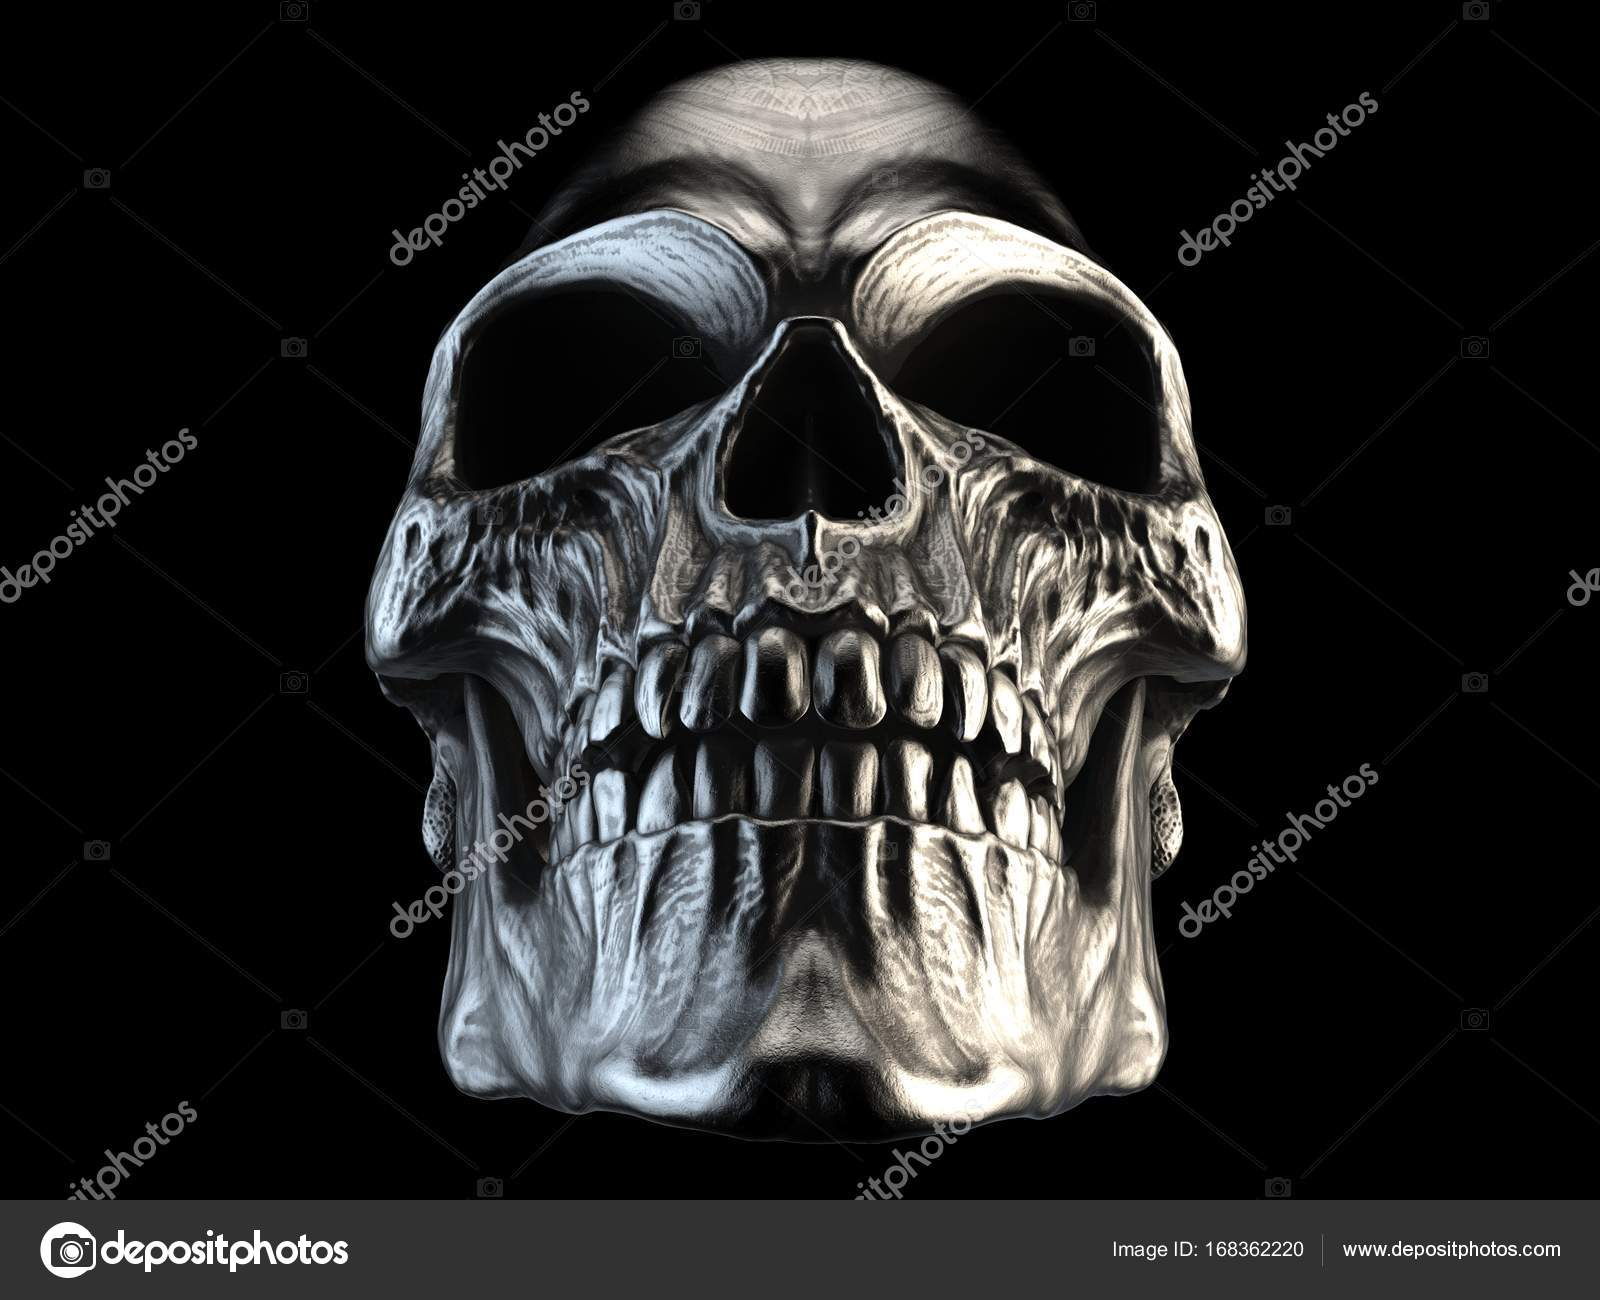 On Heavy Metal Horror Silver Heavy Metal Skull Stock Photo Trimitrius 168362220